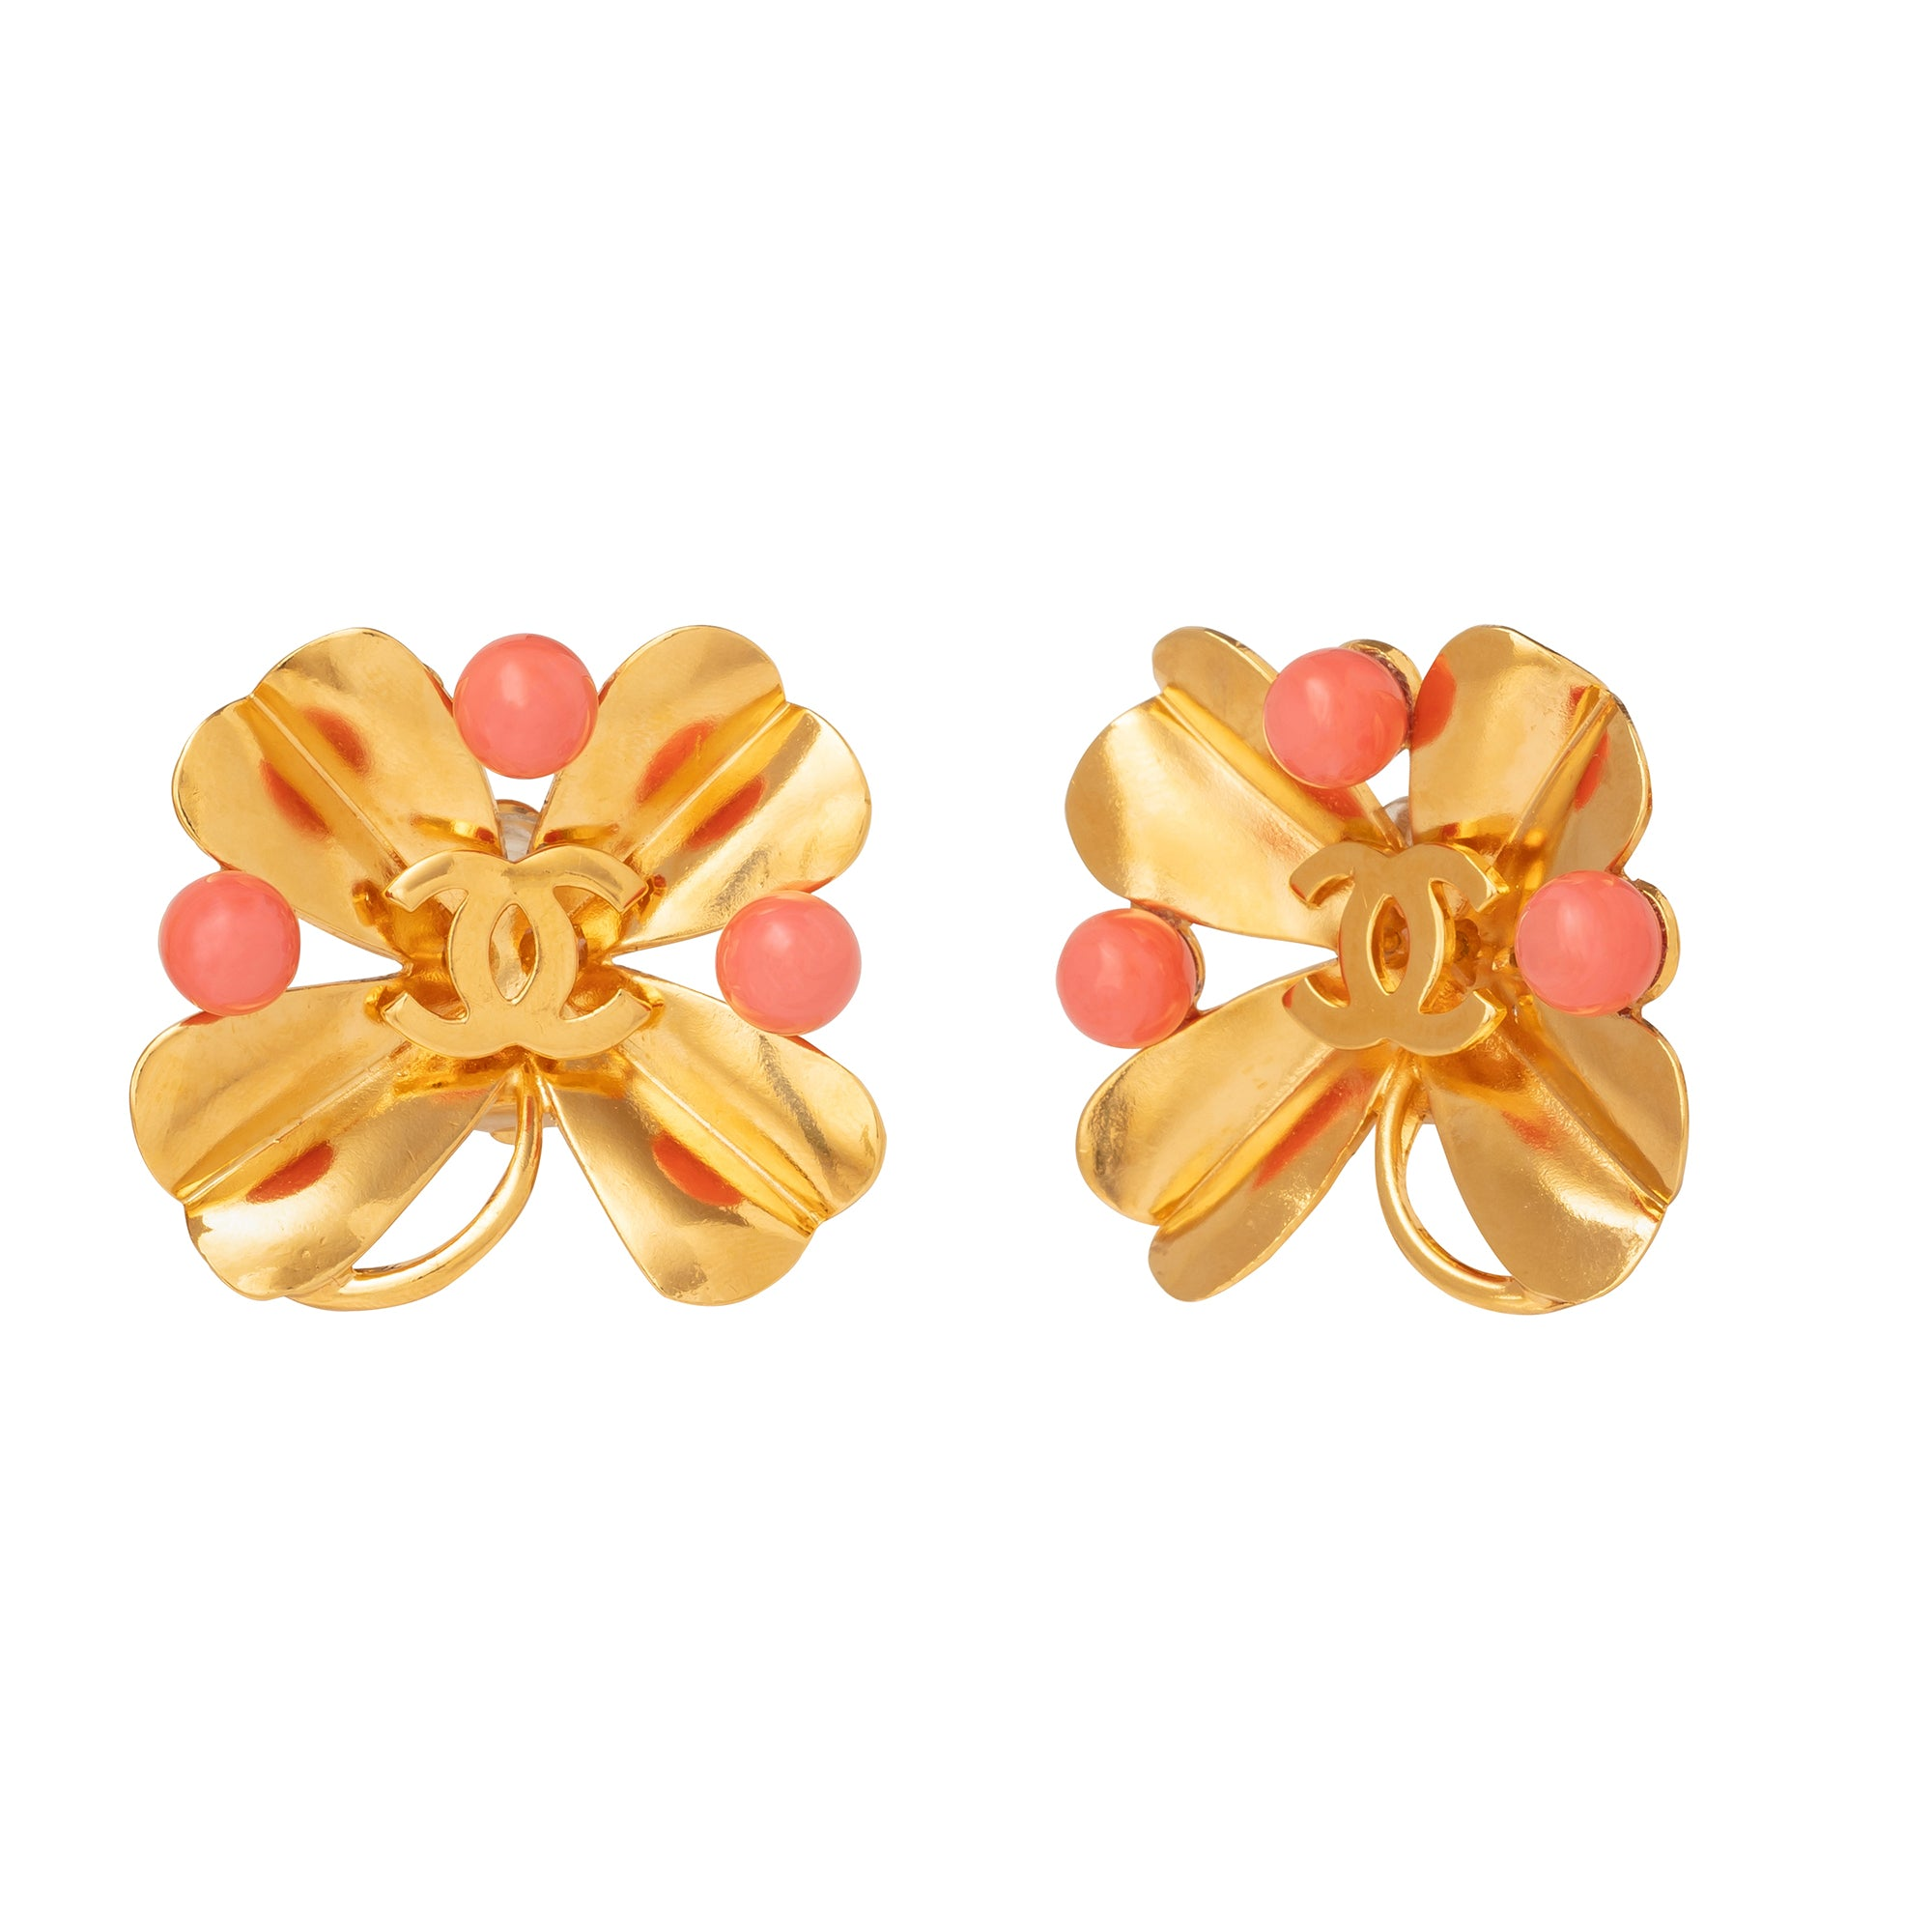 Chanel Large 4 Leaf Clover Coral Earrings - Antique & Vintage - Earrings | Broken English Jewelry